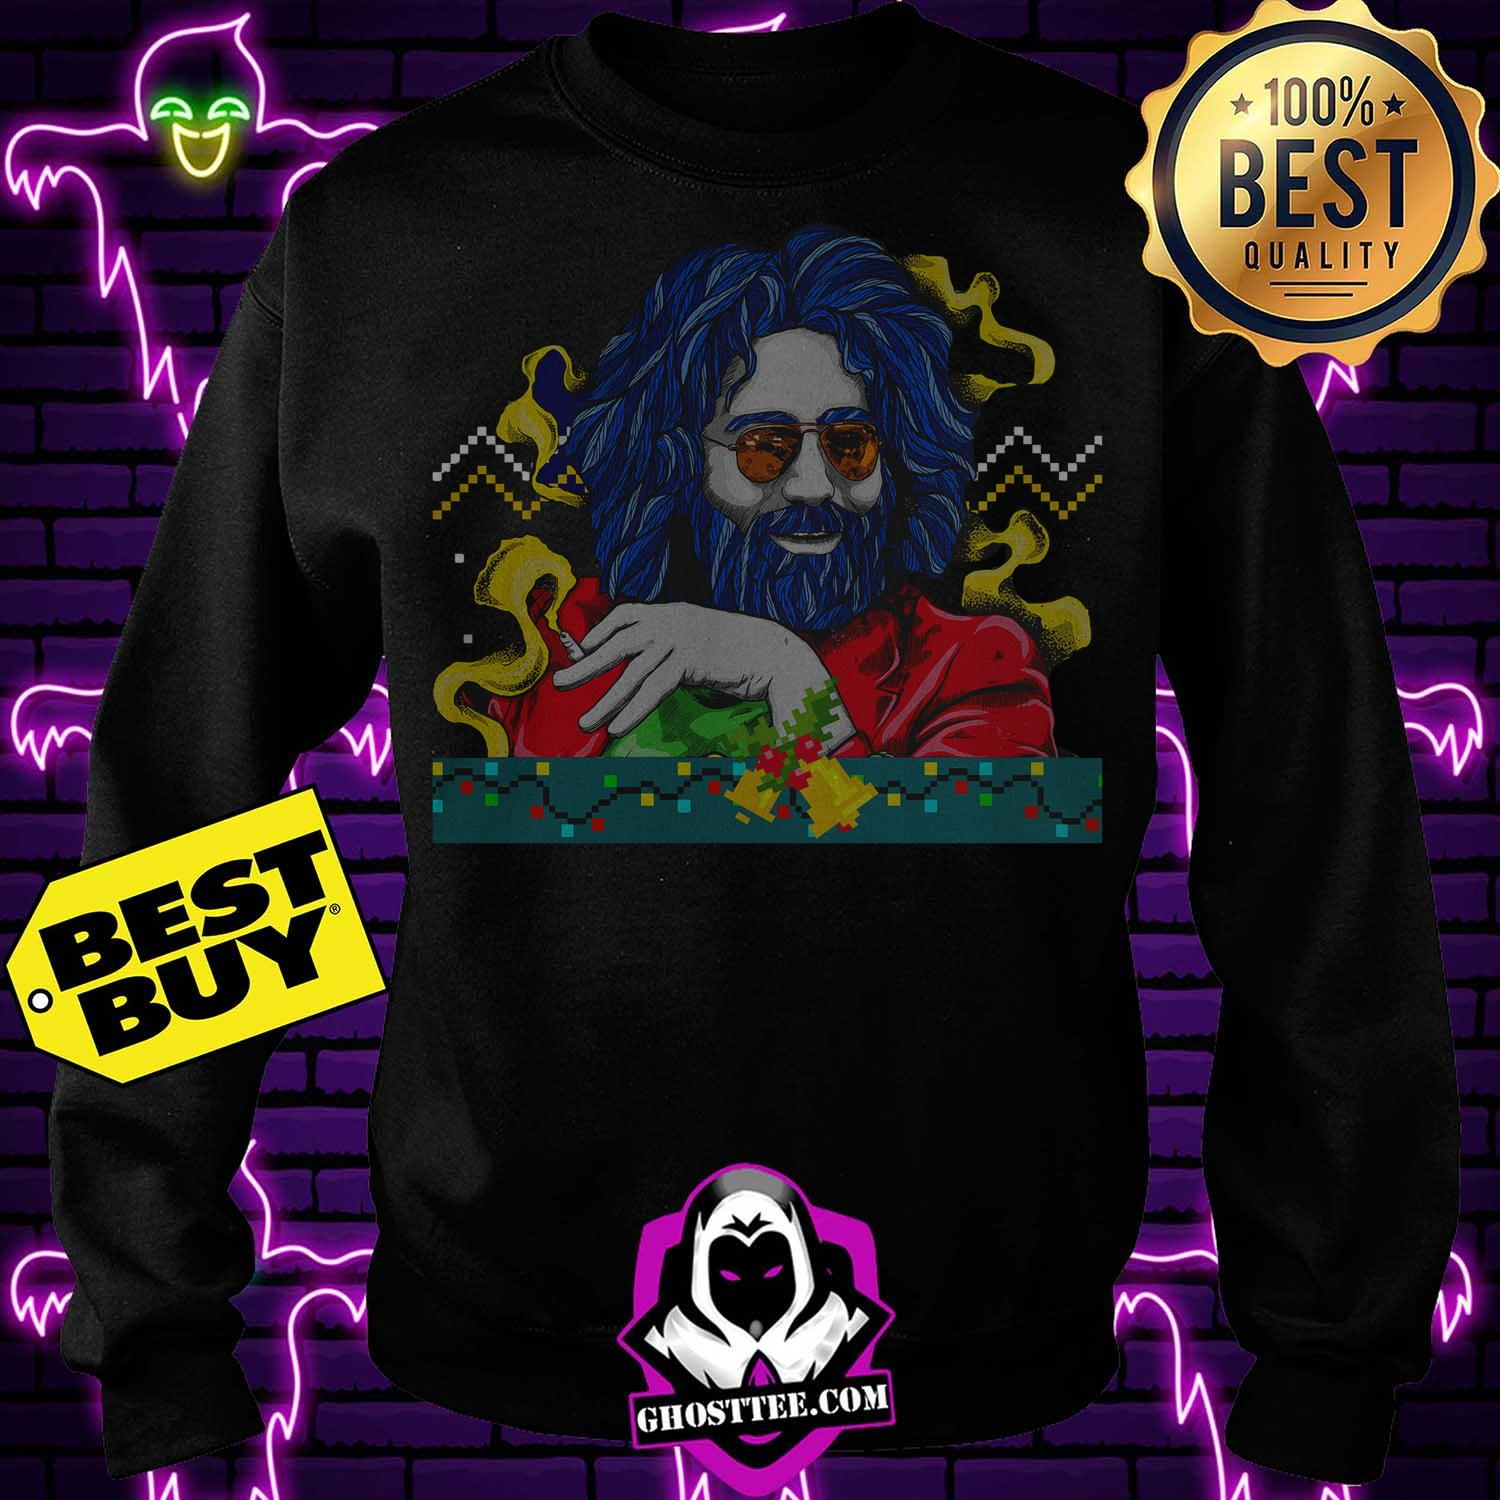 jerry garcia grateful dead merry christmas sweatshirt - Jerry garcia Grateful Dead Merry Christmas shirt